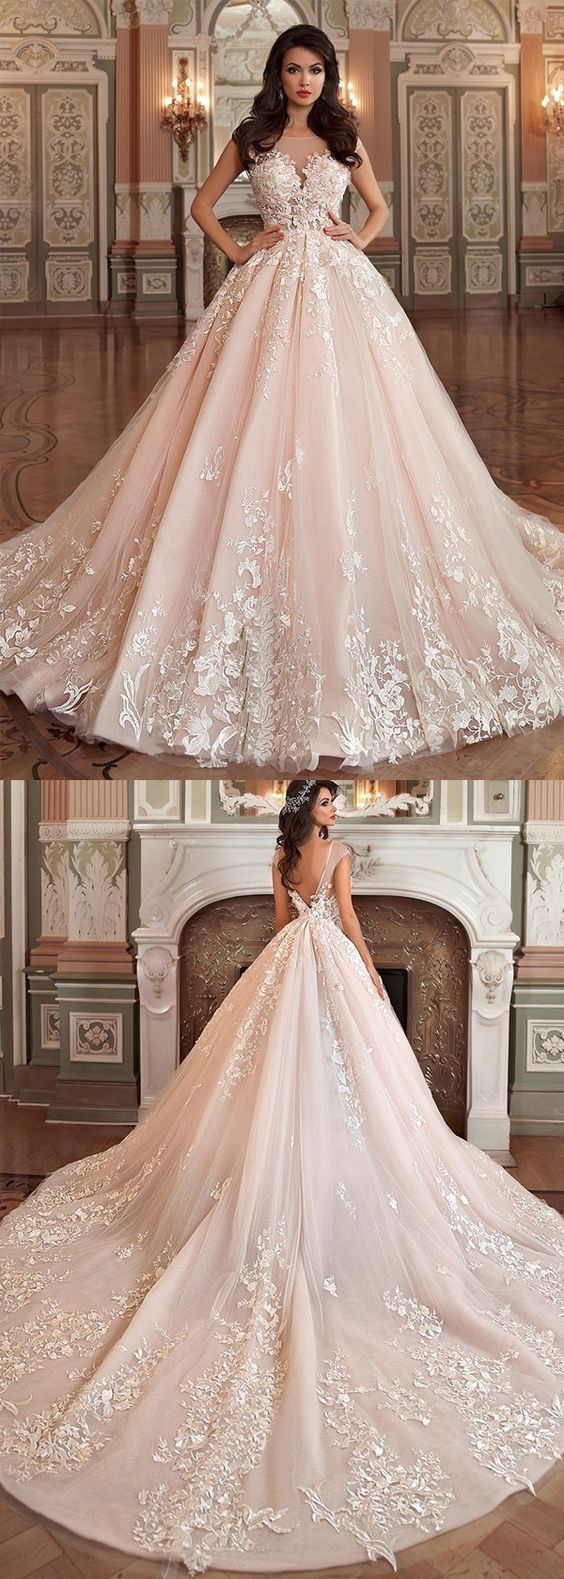 Photo of Braut Princess Tulle Bateau Ball Gown Wedding Dress With Lace Appliques